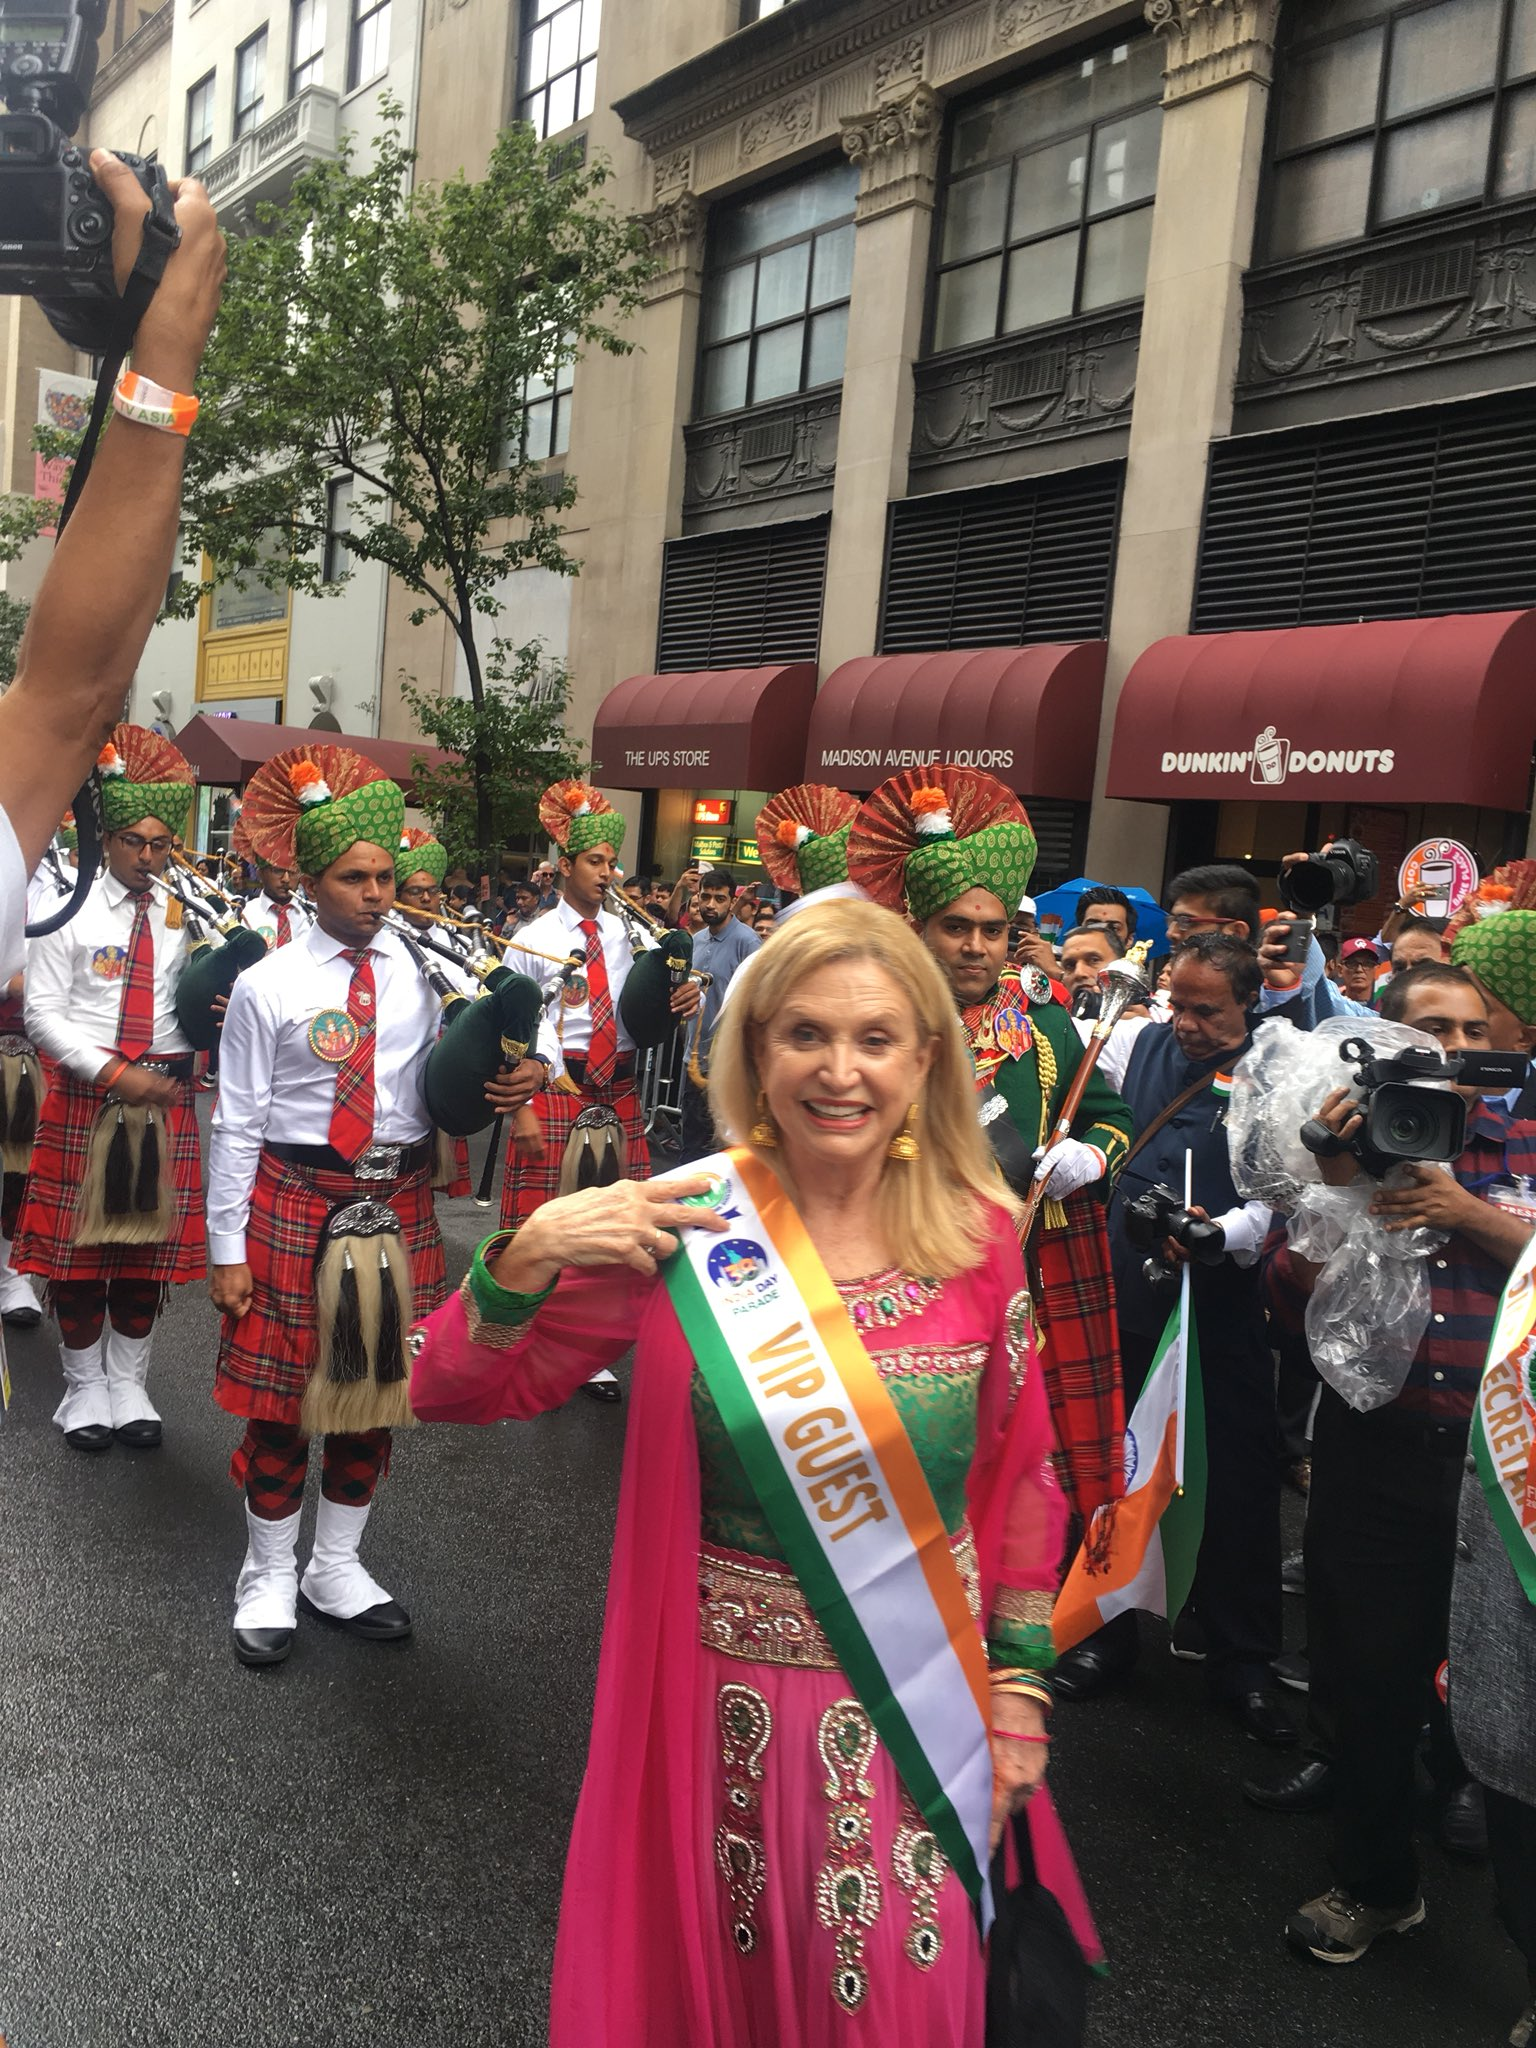 There's no parade like the #IndiaDayParade! Thrilled to be celebrating 72 years of Independence! https://t.co/IadDlsdtb3